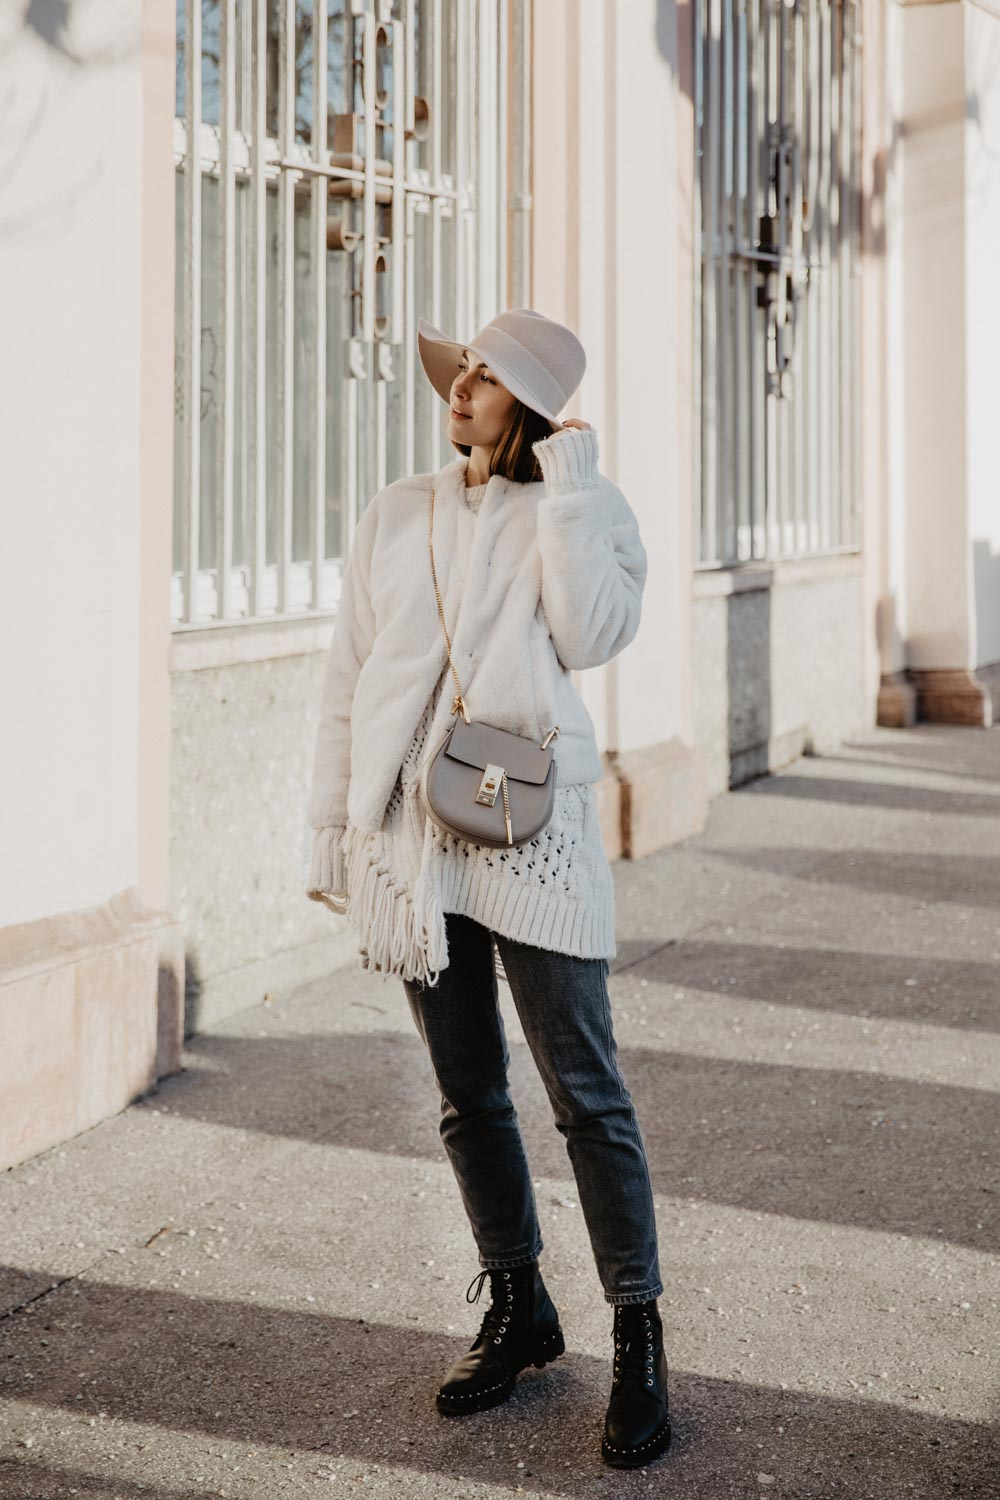 Chloé Drew Bag, Closed Pedal Pusher Jeans, Teddy Faux Fur Jacket, Lace Up Boots, Hat | yourockmylife